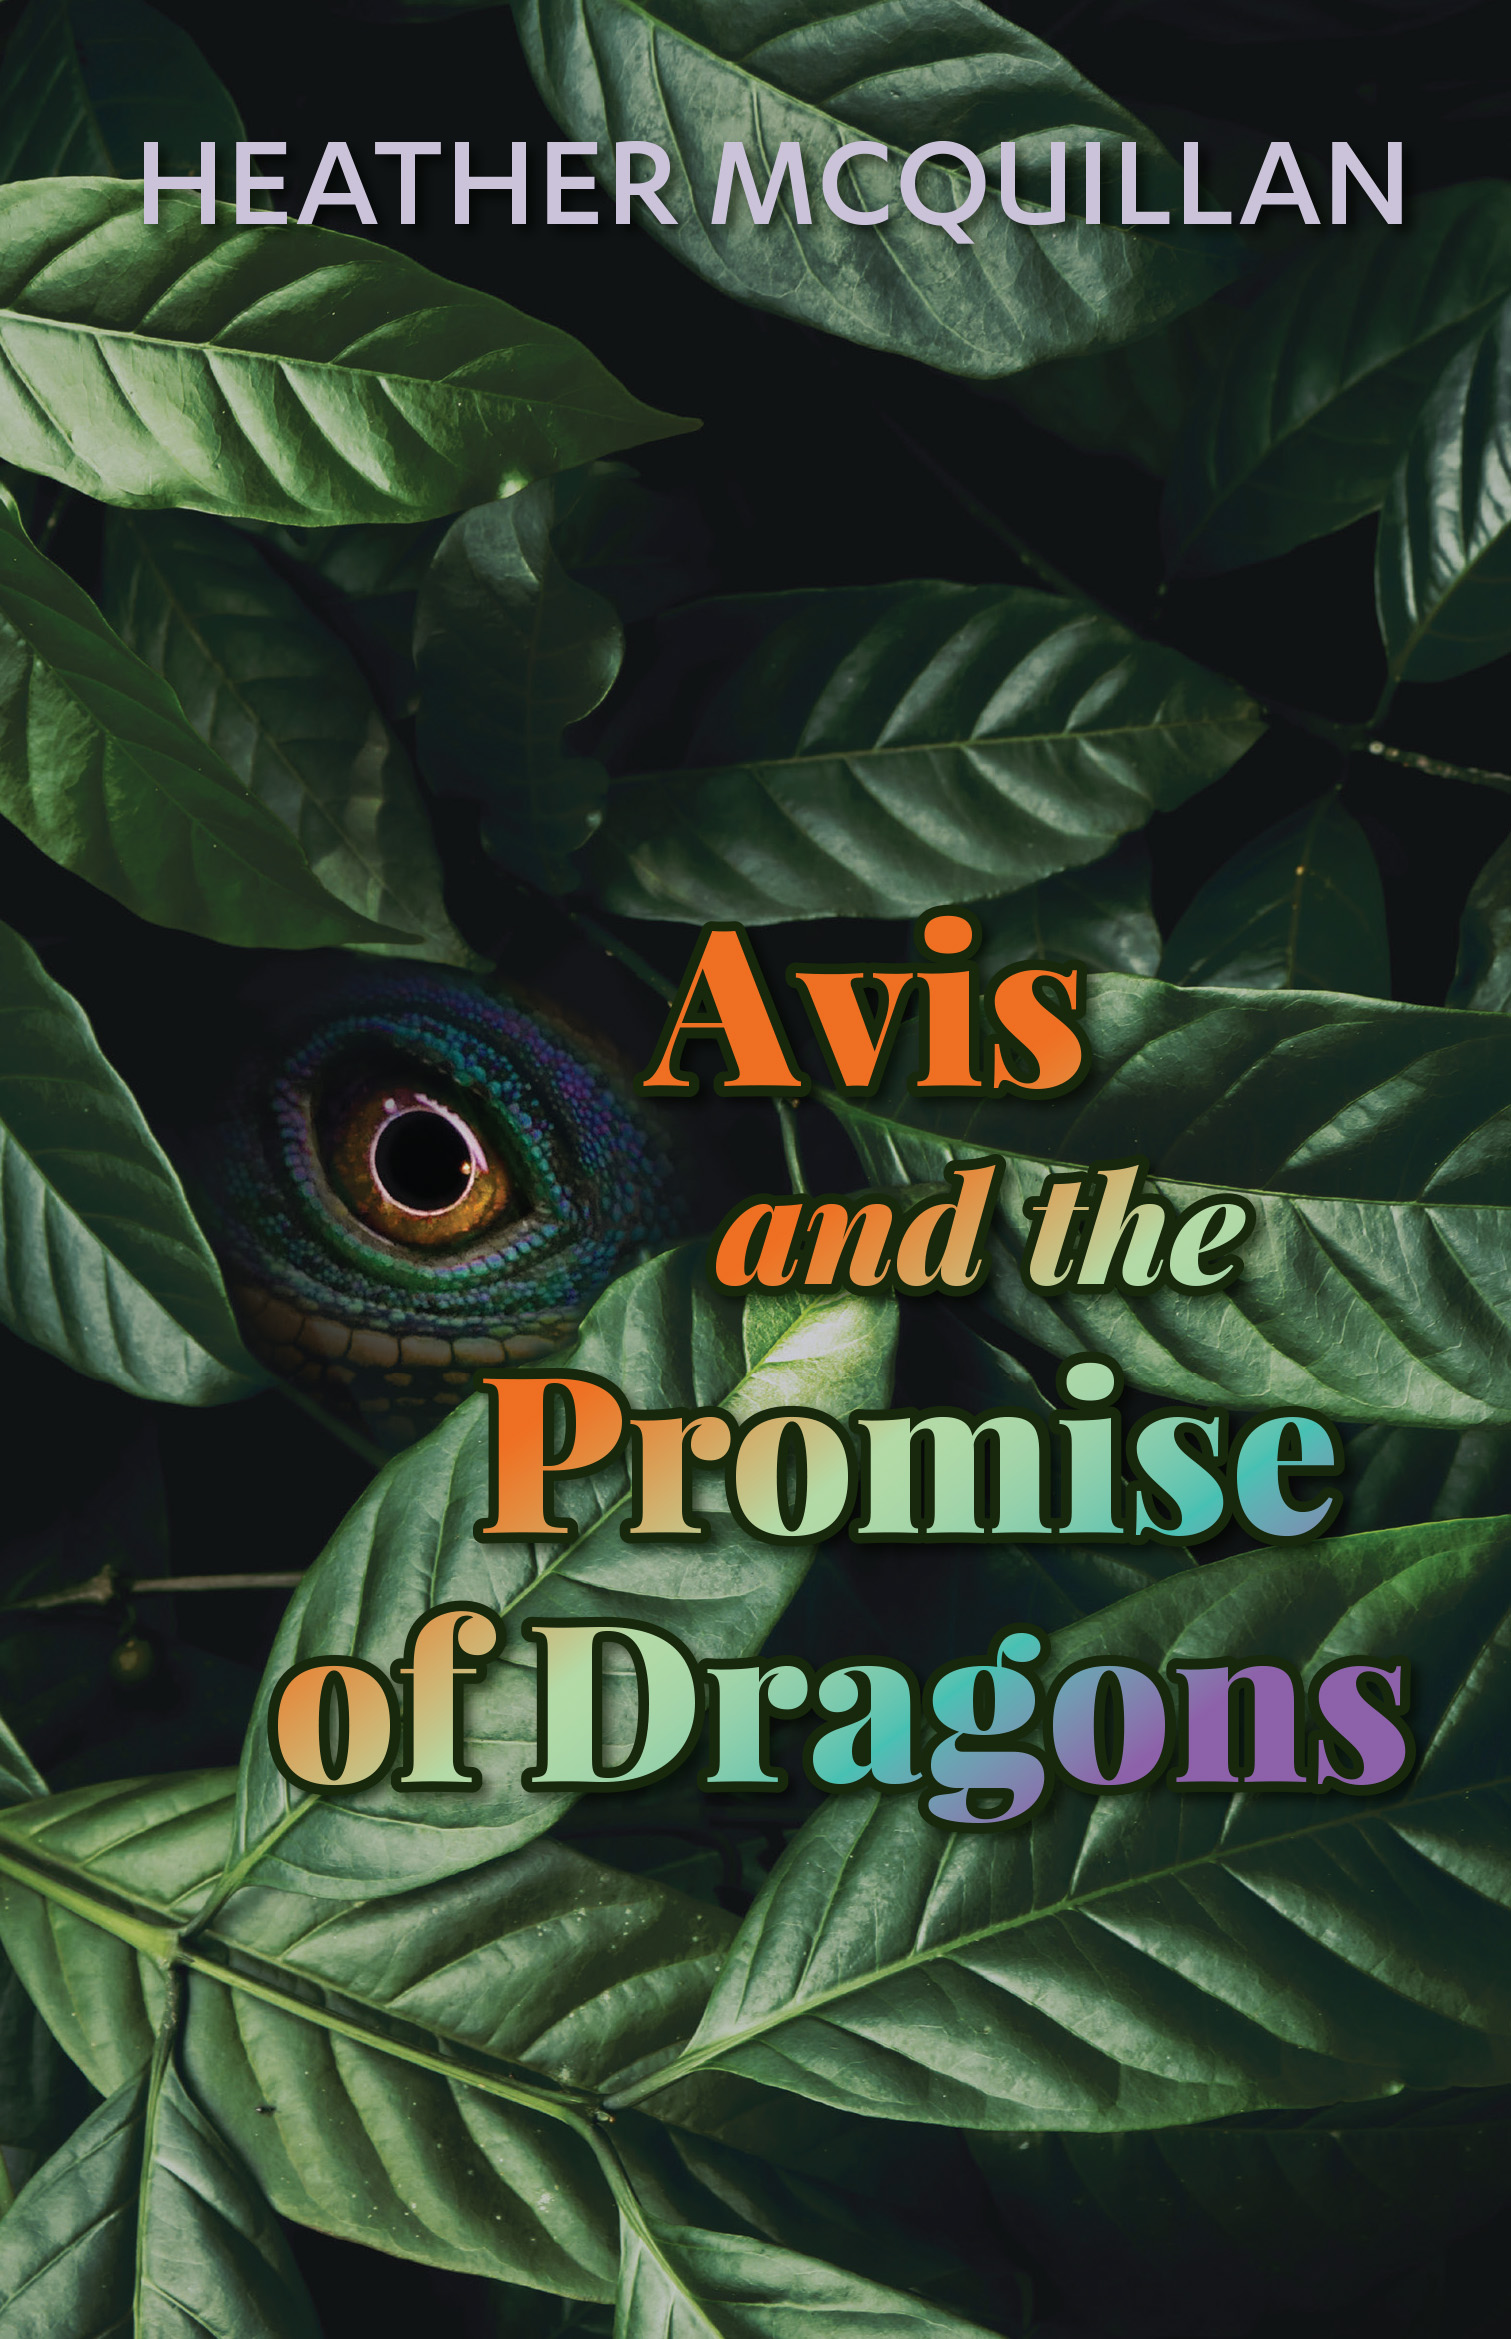 A Promise of Dragons (and chocolate) thumbnail image.